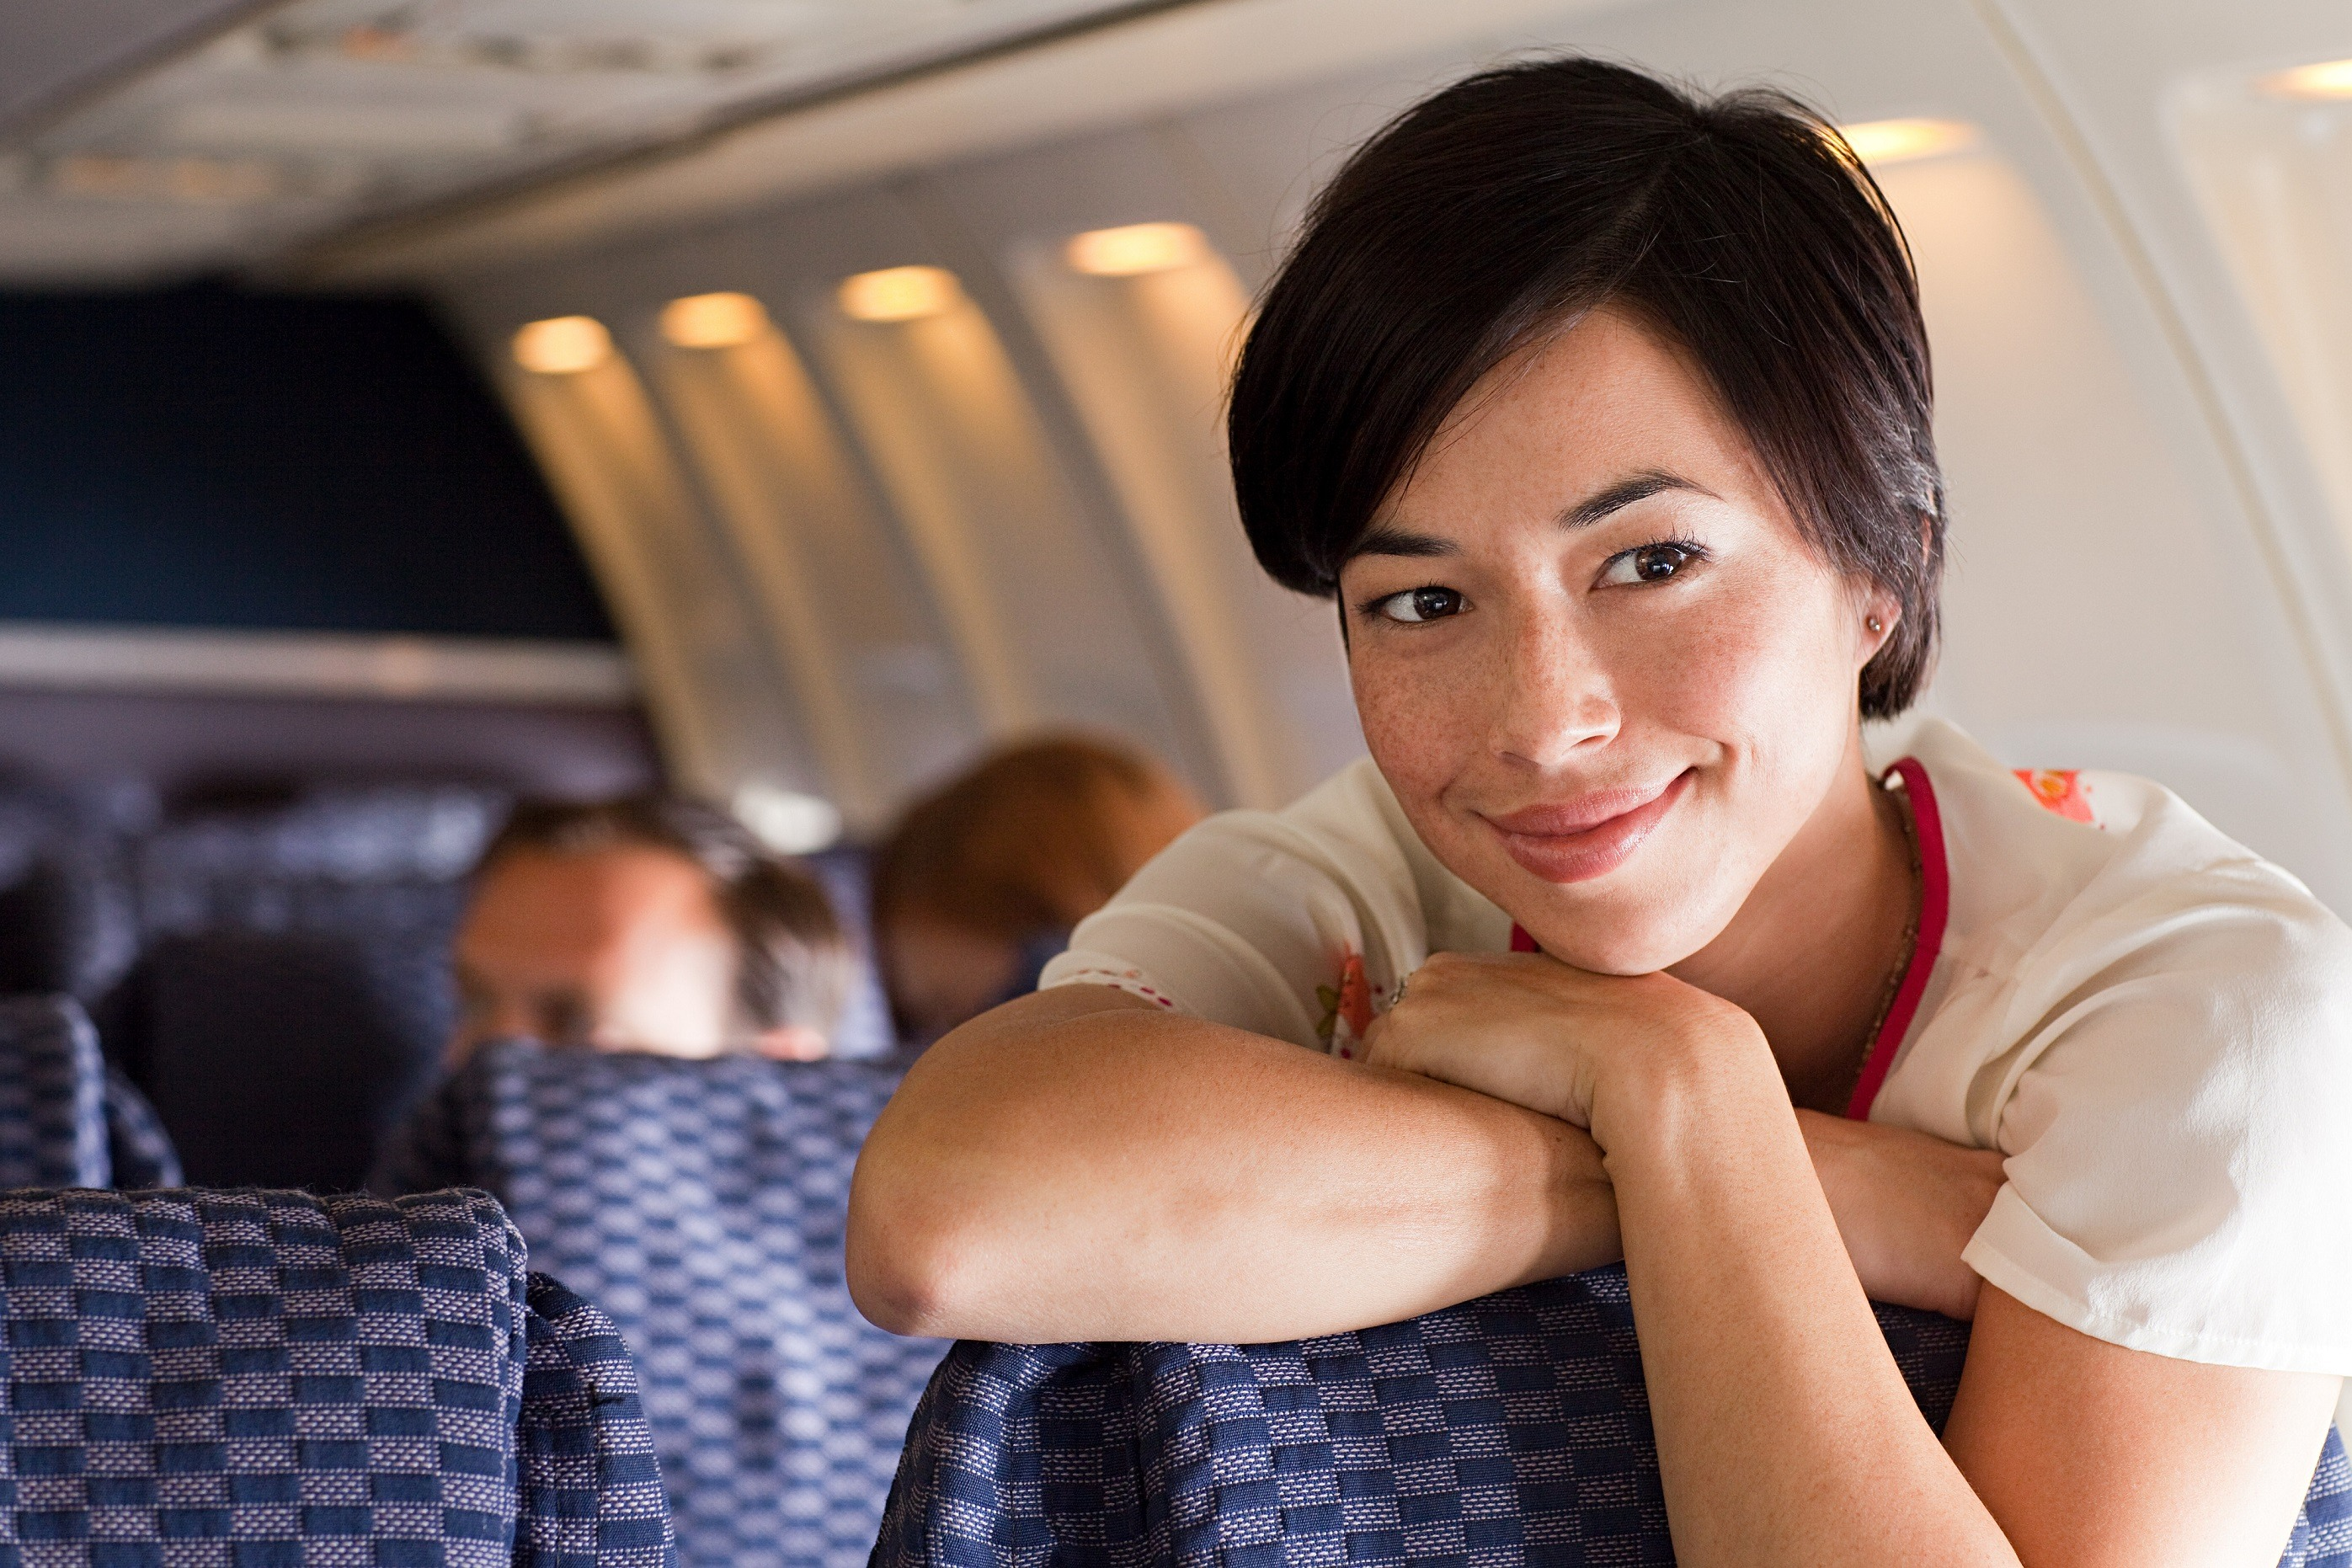 Young woman standing on an airplane